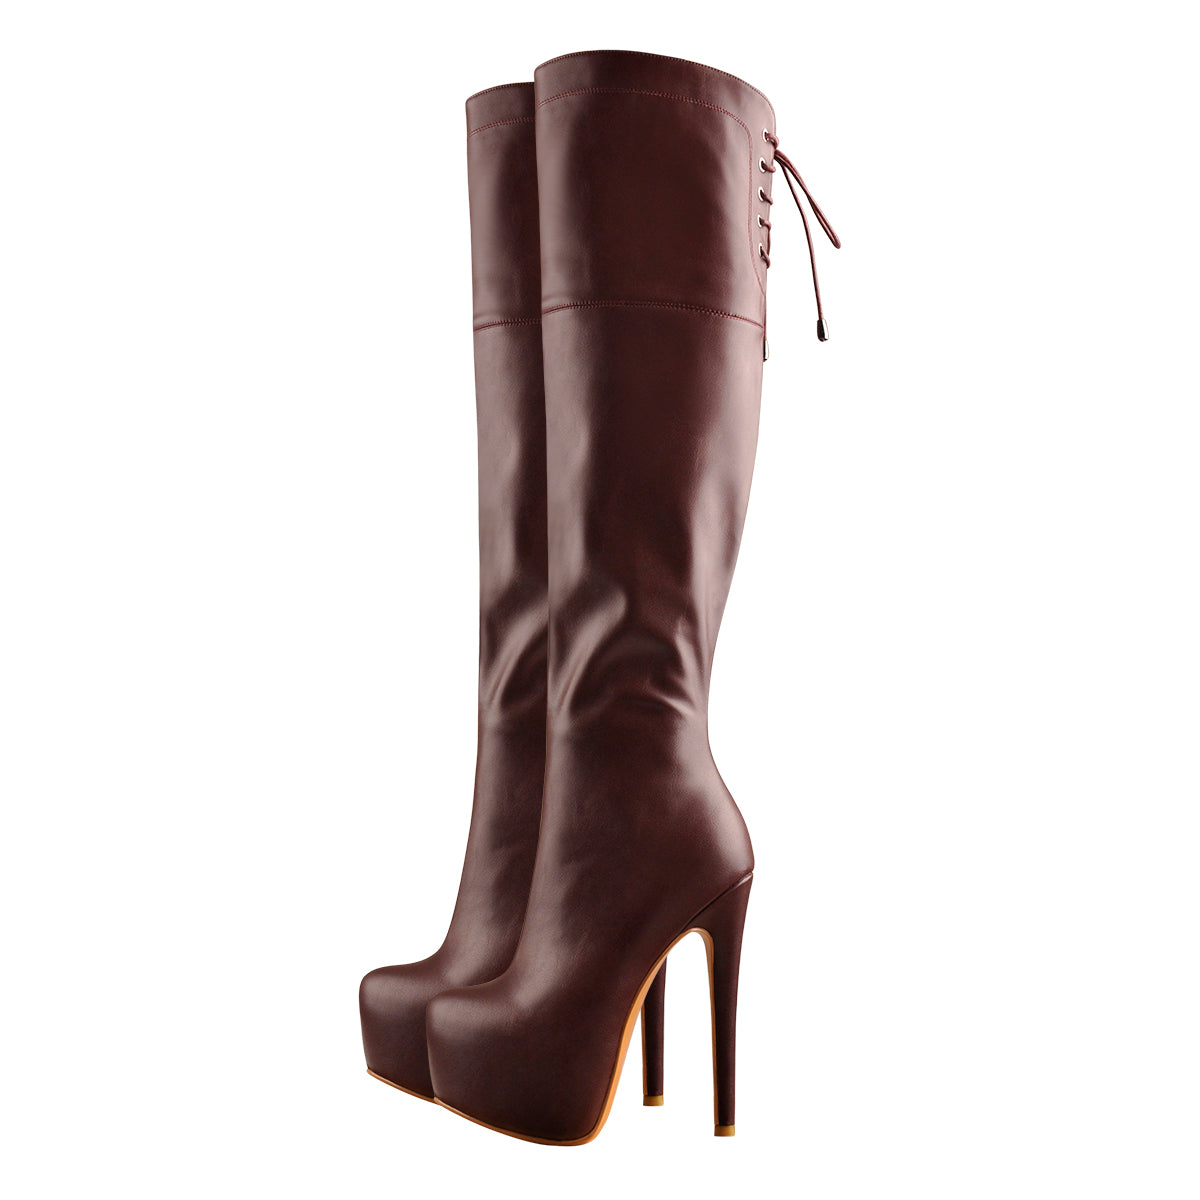 Faux Leather Round Toe Platform High Heels Over The Knee Boots